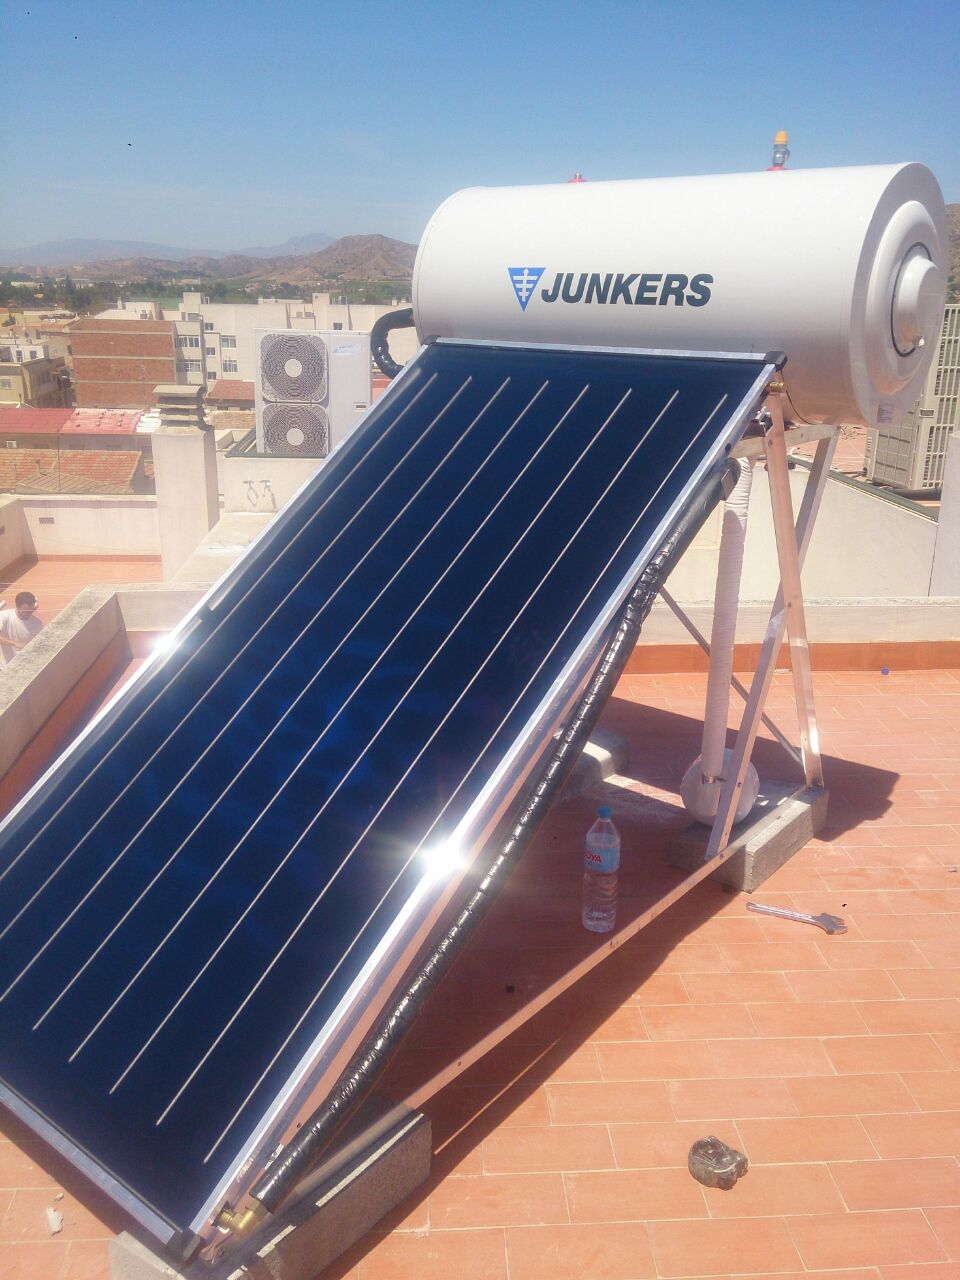 Placas solares junkers opiniones